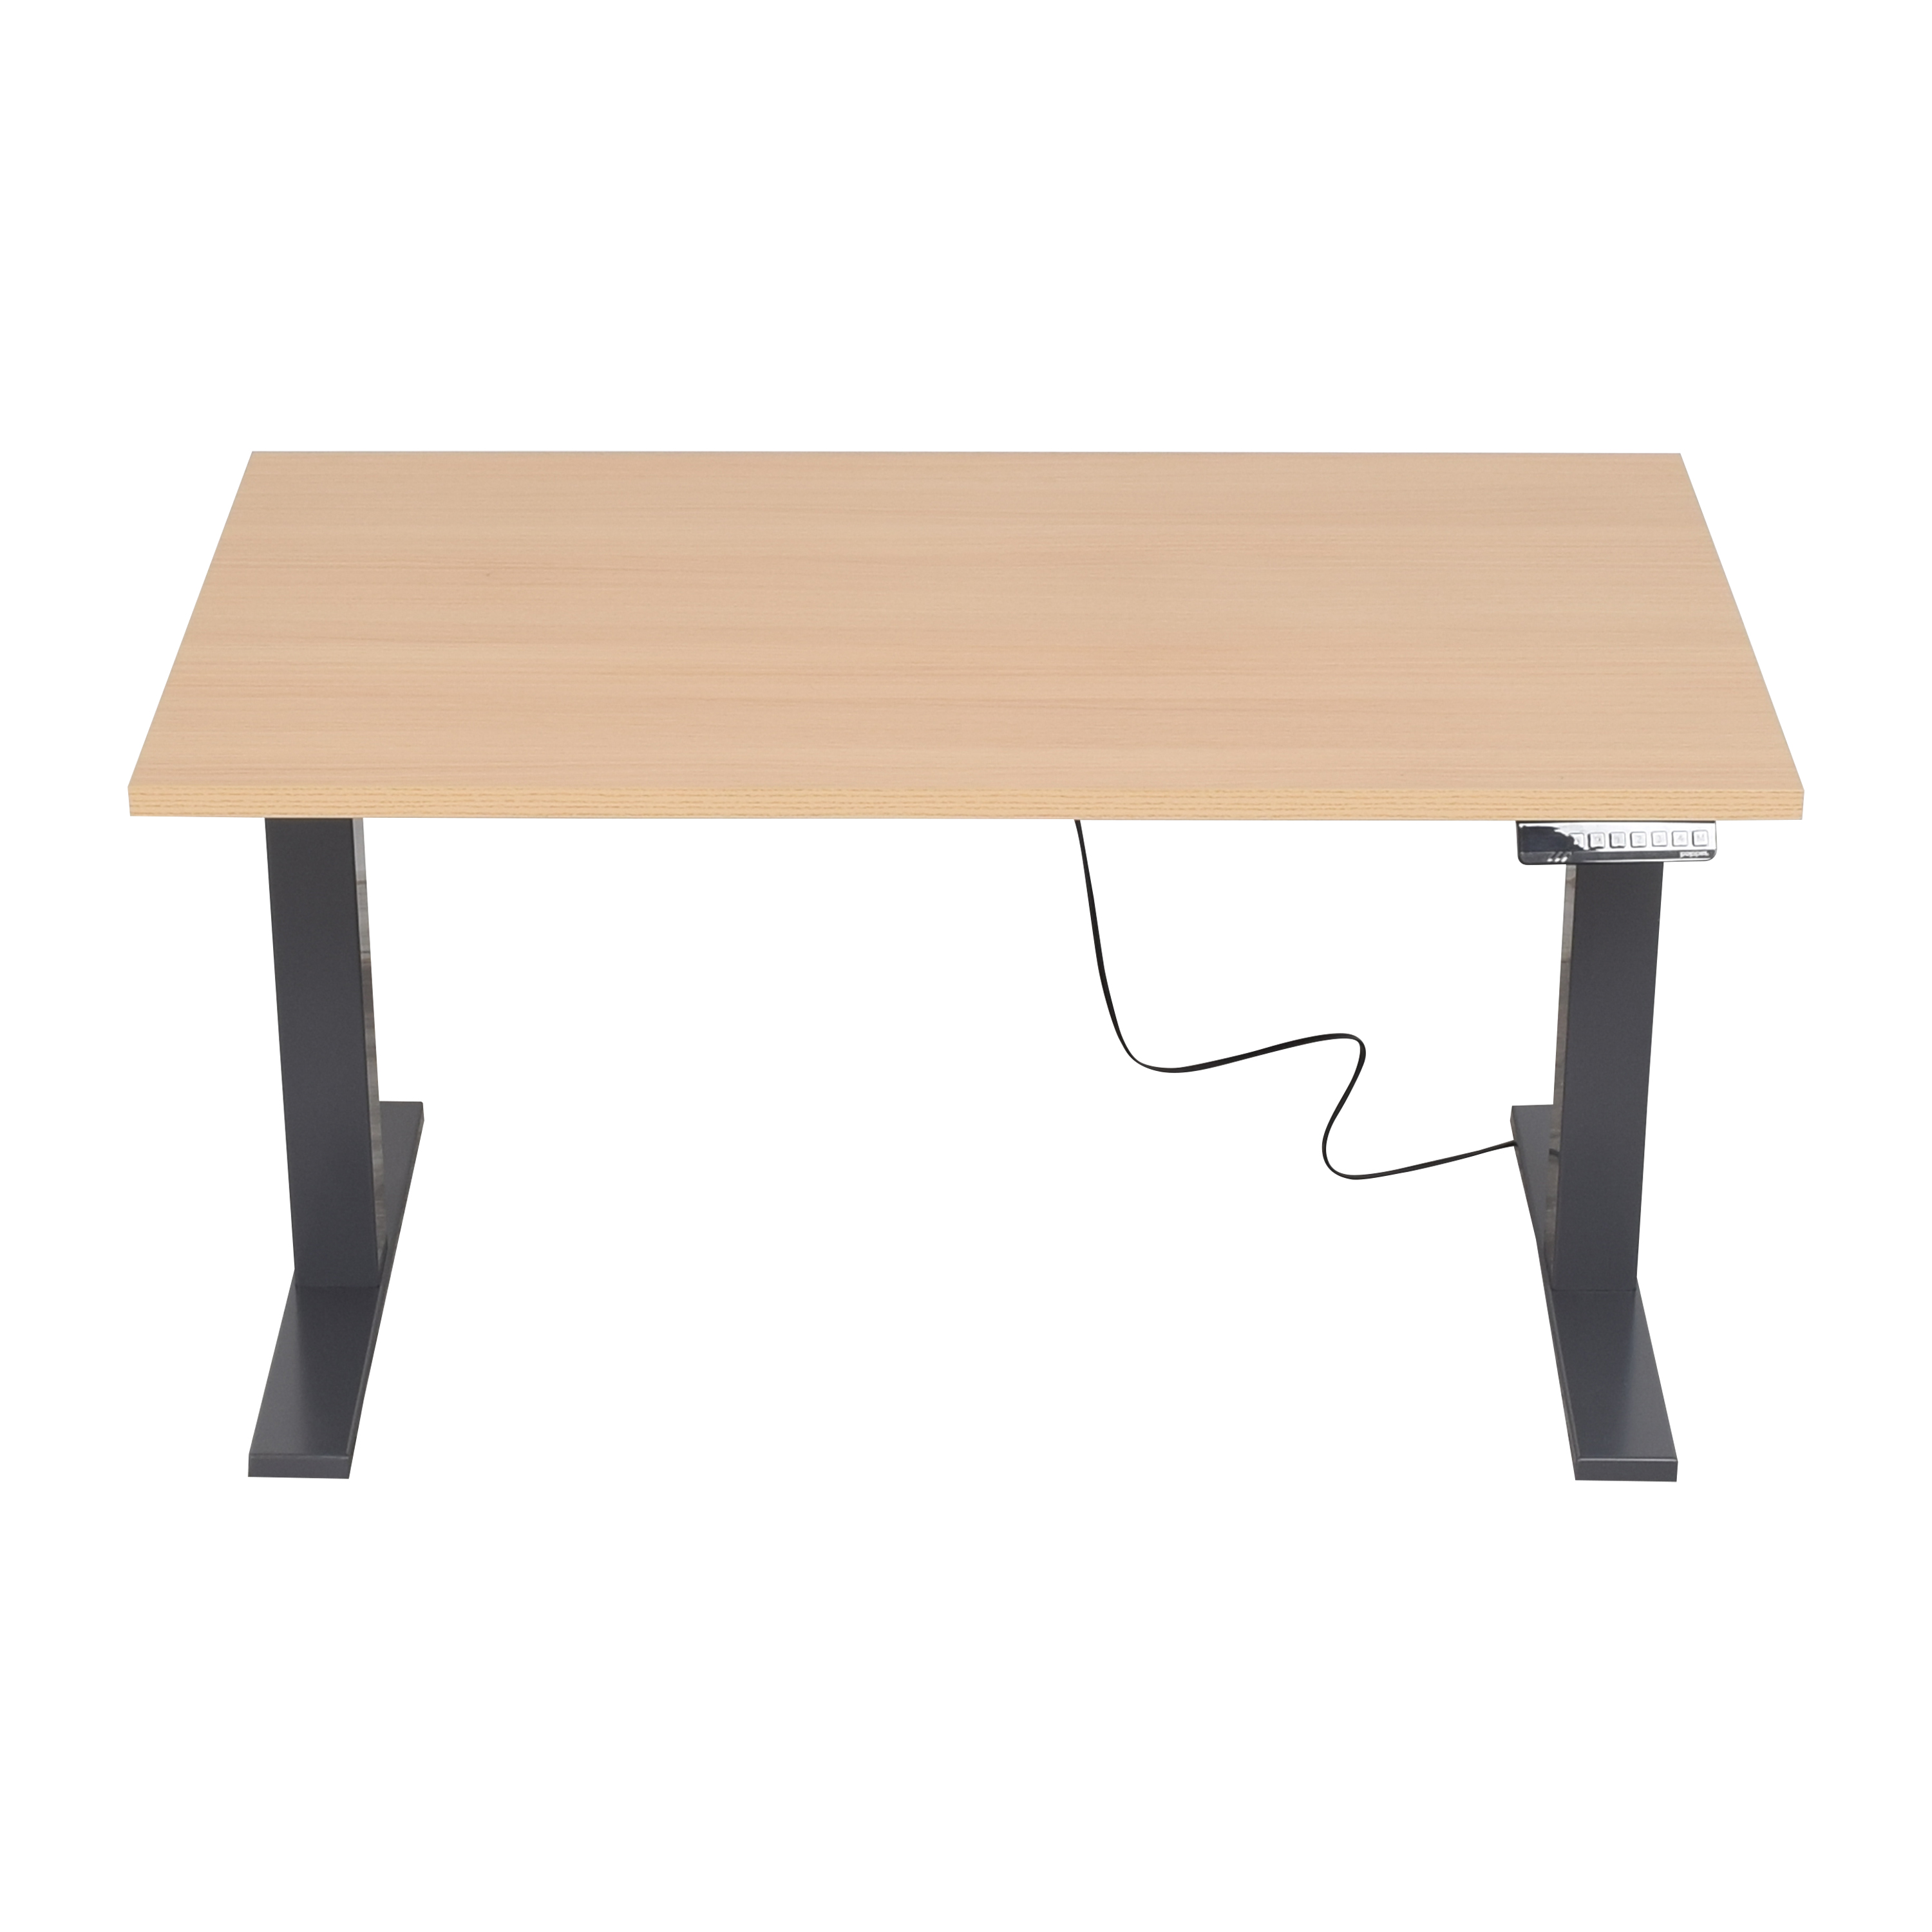 Poppin Poppin Series L Adjustable Height Desk dimensions